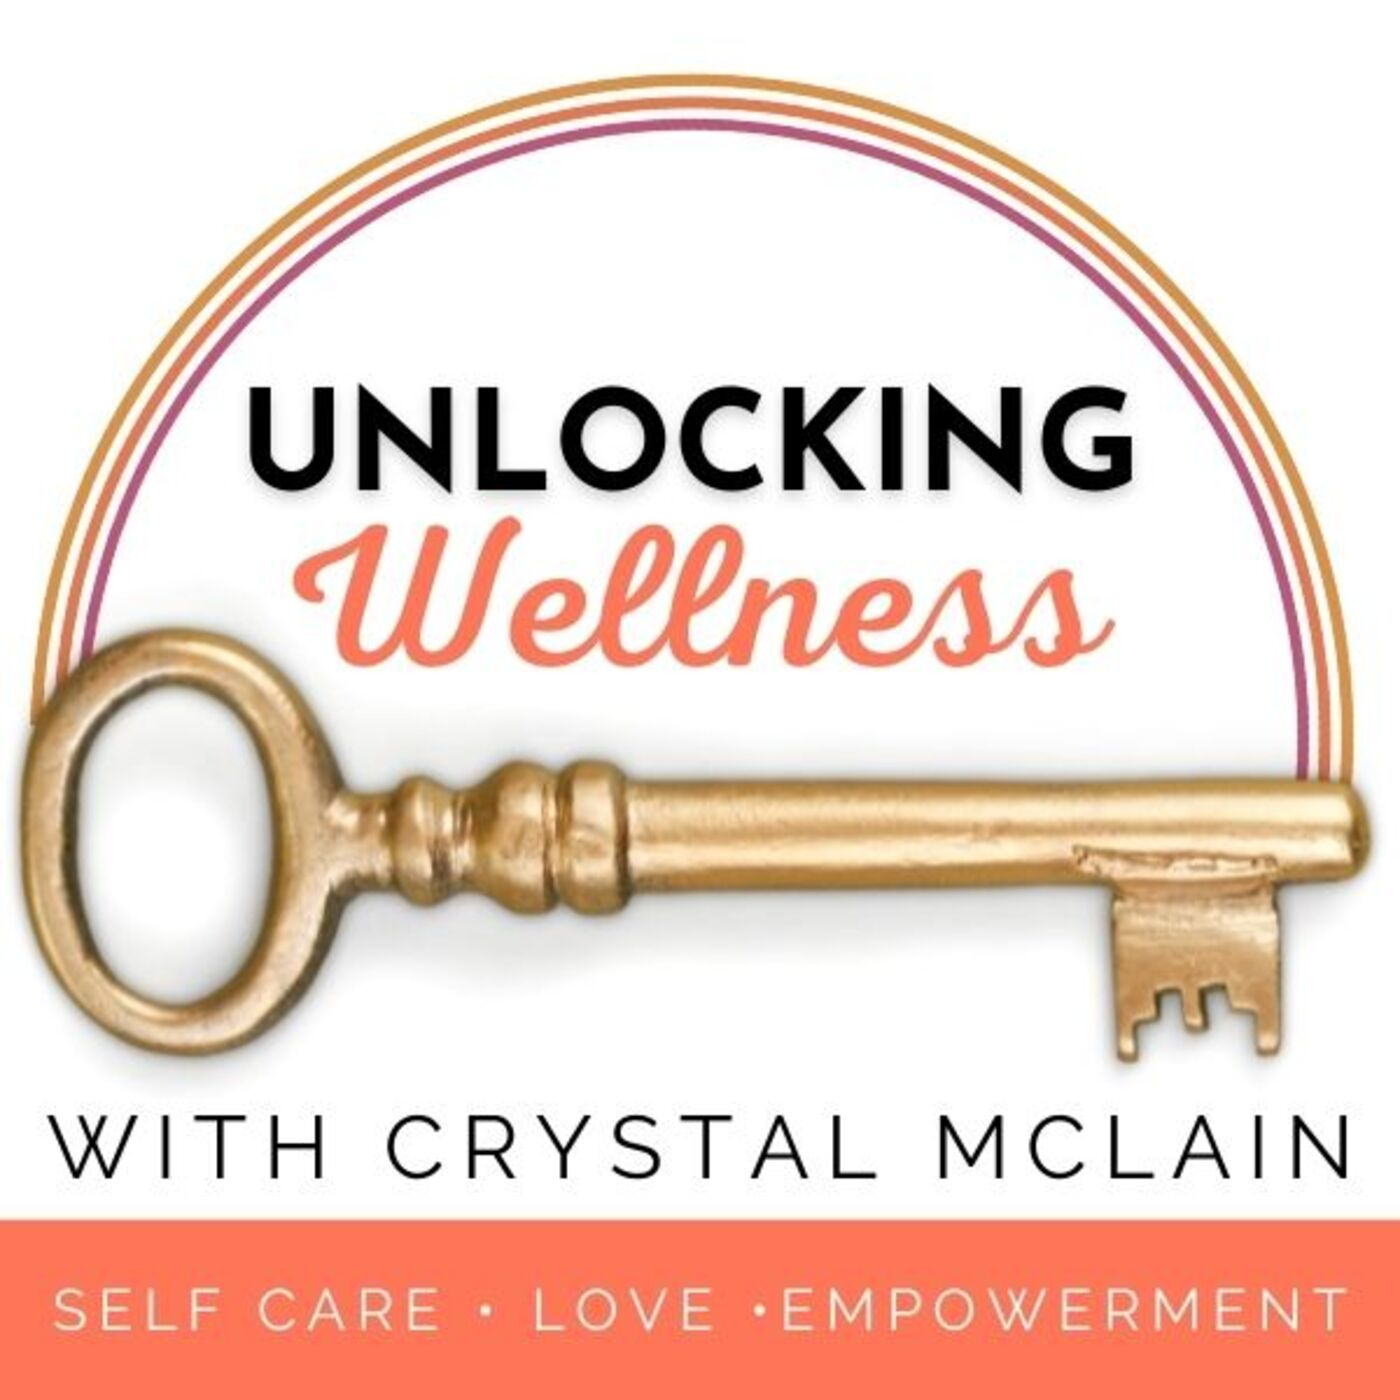 Decreased Pain, Weight Loss, & Stress Management - My Client's Success Story With Self Care Independence